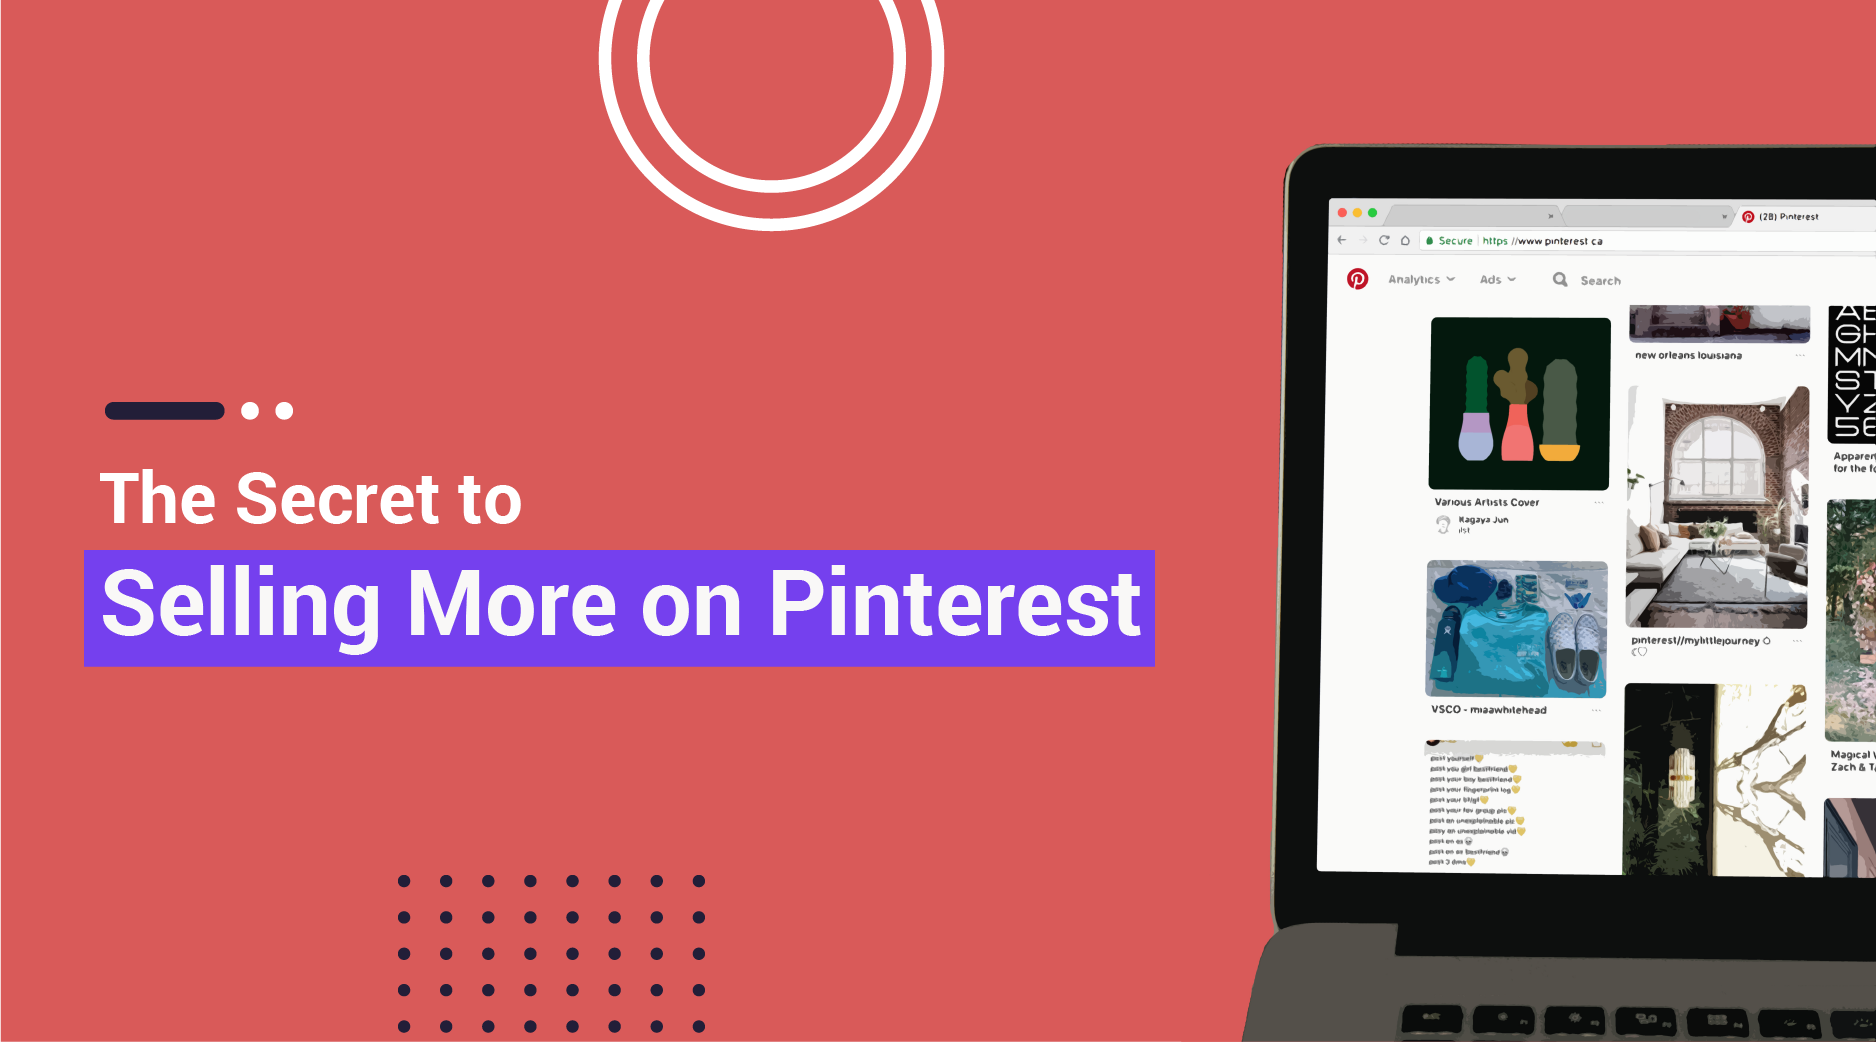 pinterest, social commerce